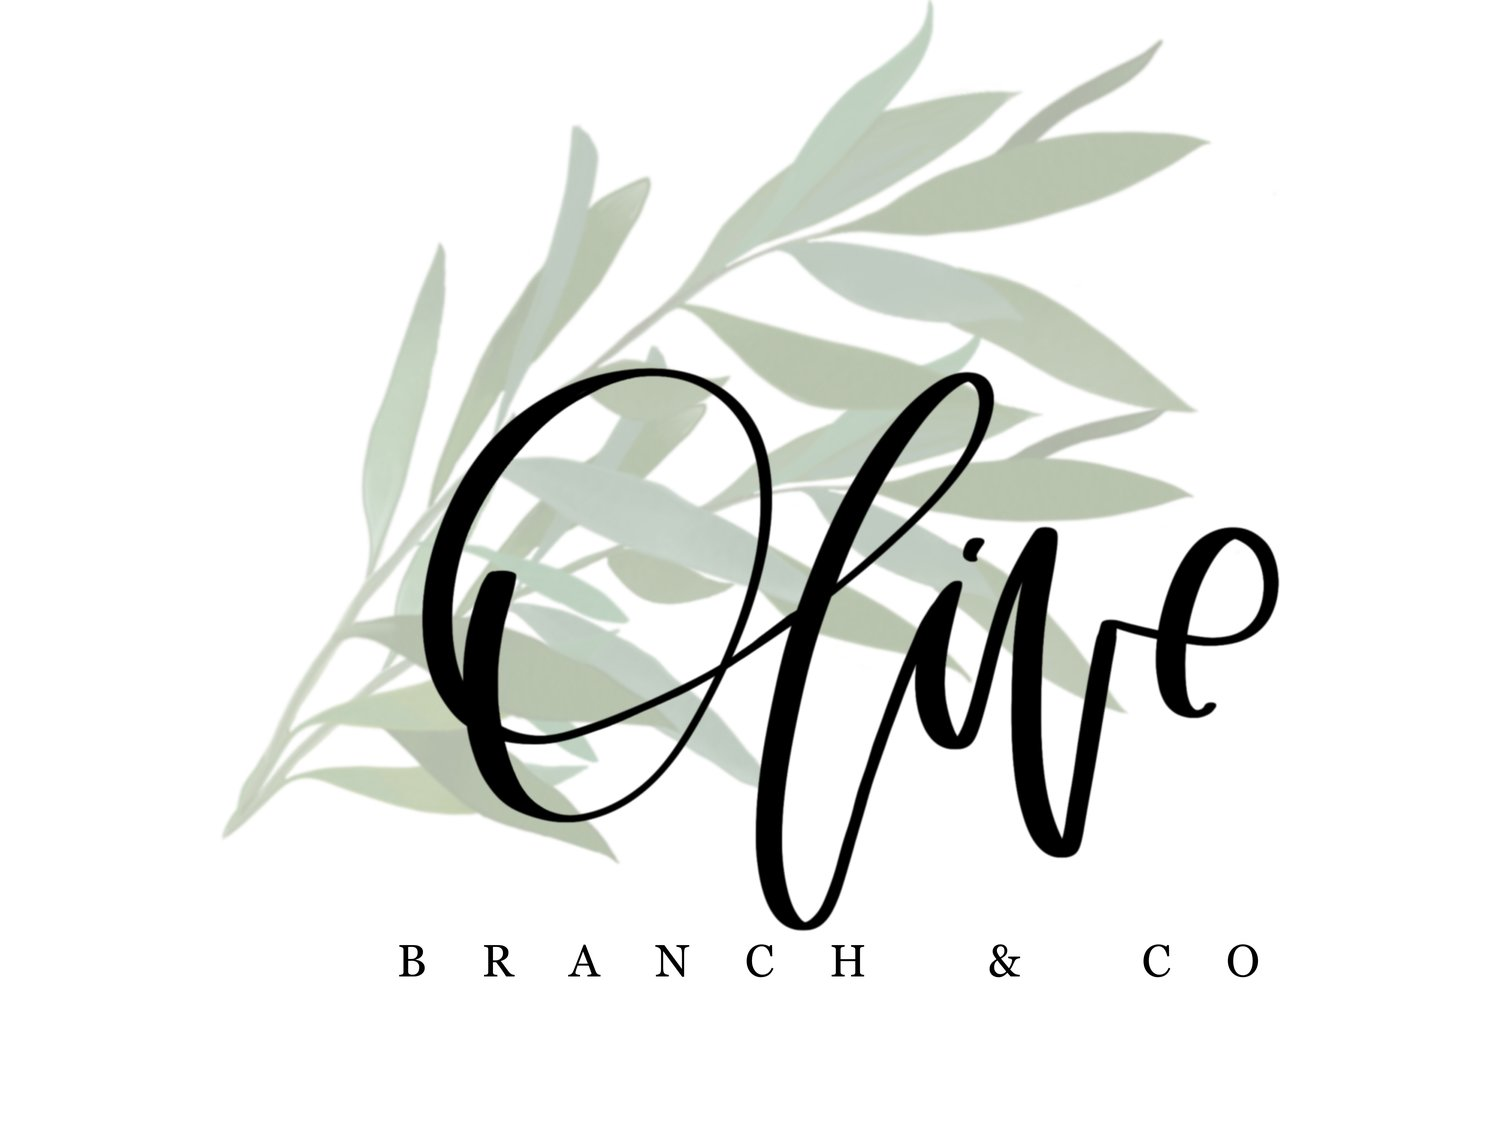 The Olive Branch & Co.